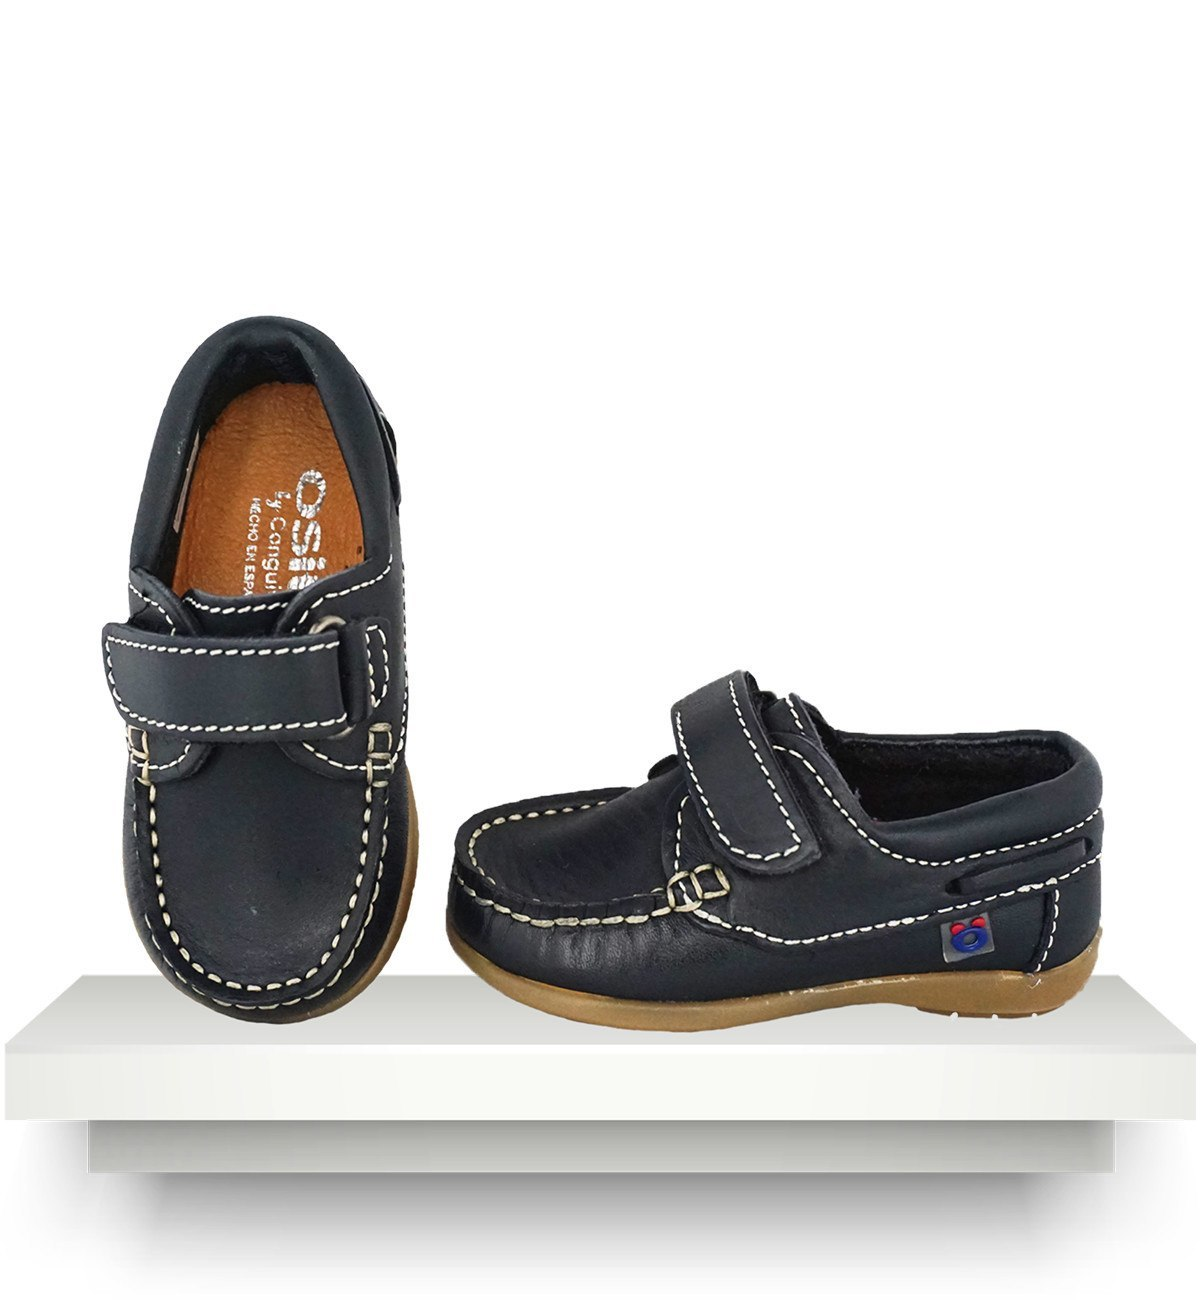 Spanish baby clothes | baby shoes | Navy blue moccasins |babymaC  - 1